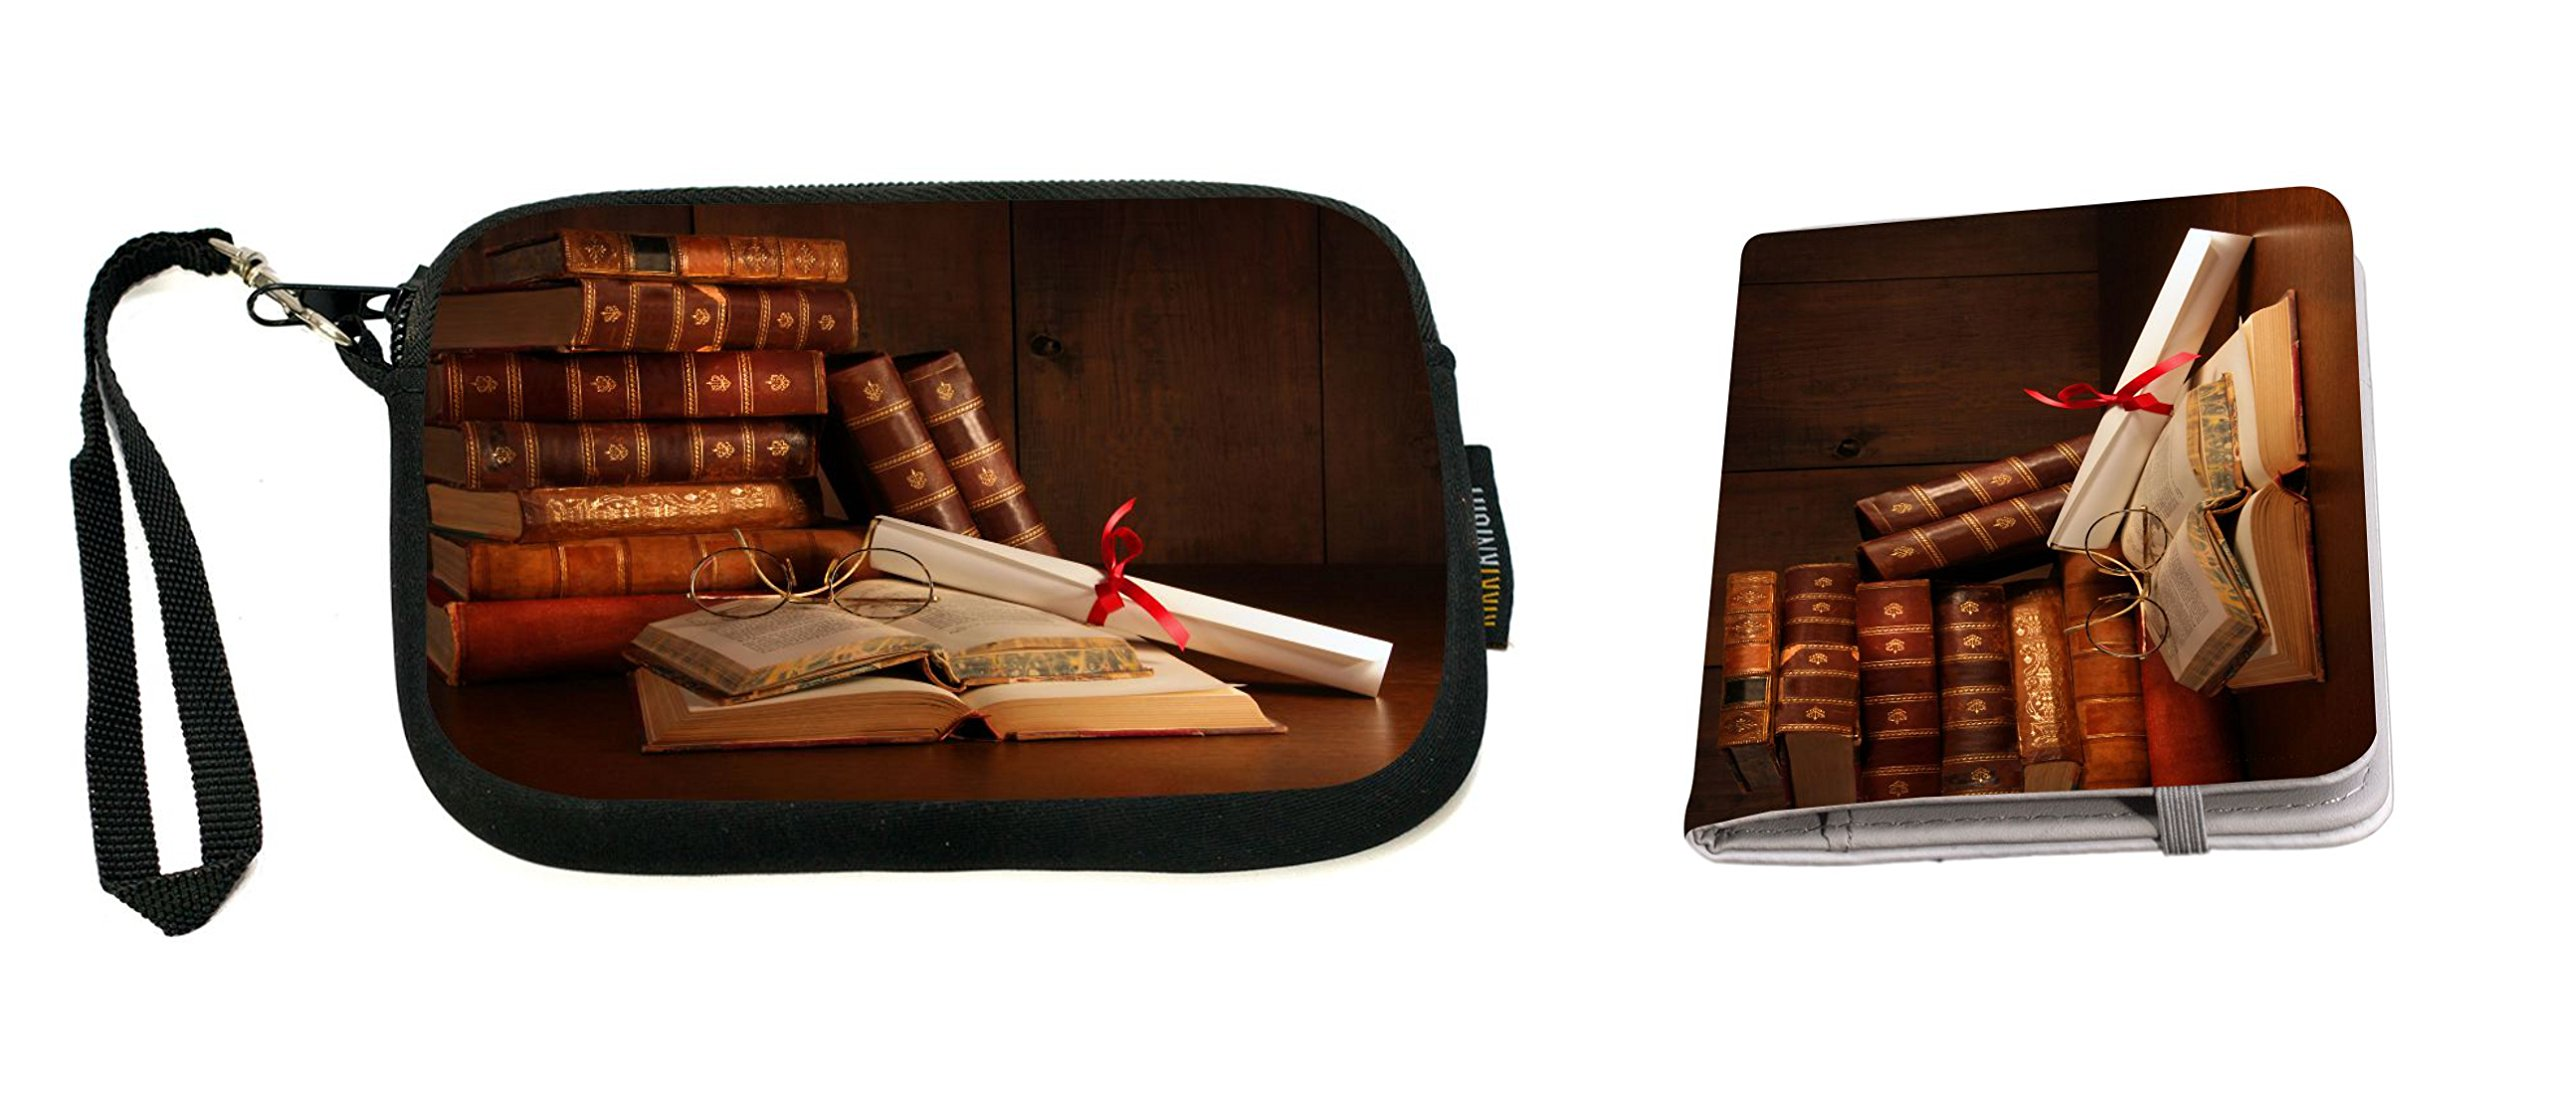 Rikki Knight Pile Of Old Books With Glasses On Desk Design Neoprene Clutch Wristlet with Matching Passport Holder by Rikki Knight